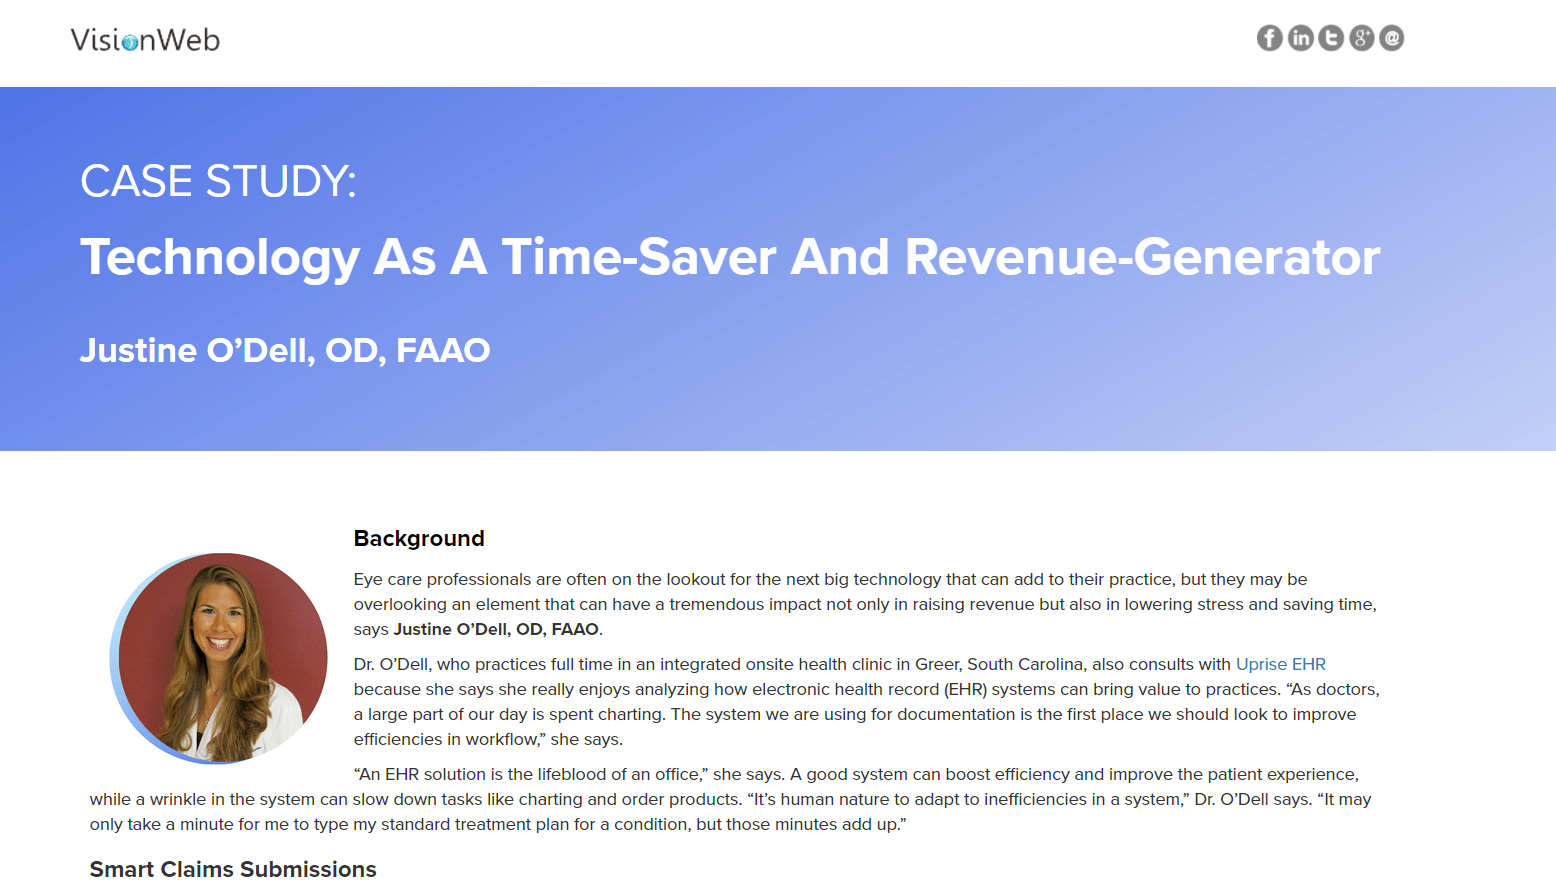 Technology As A Time-Saver And Revenue-Generator